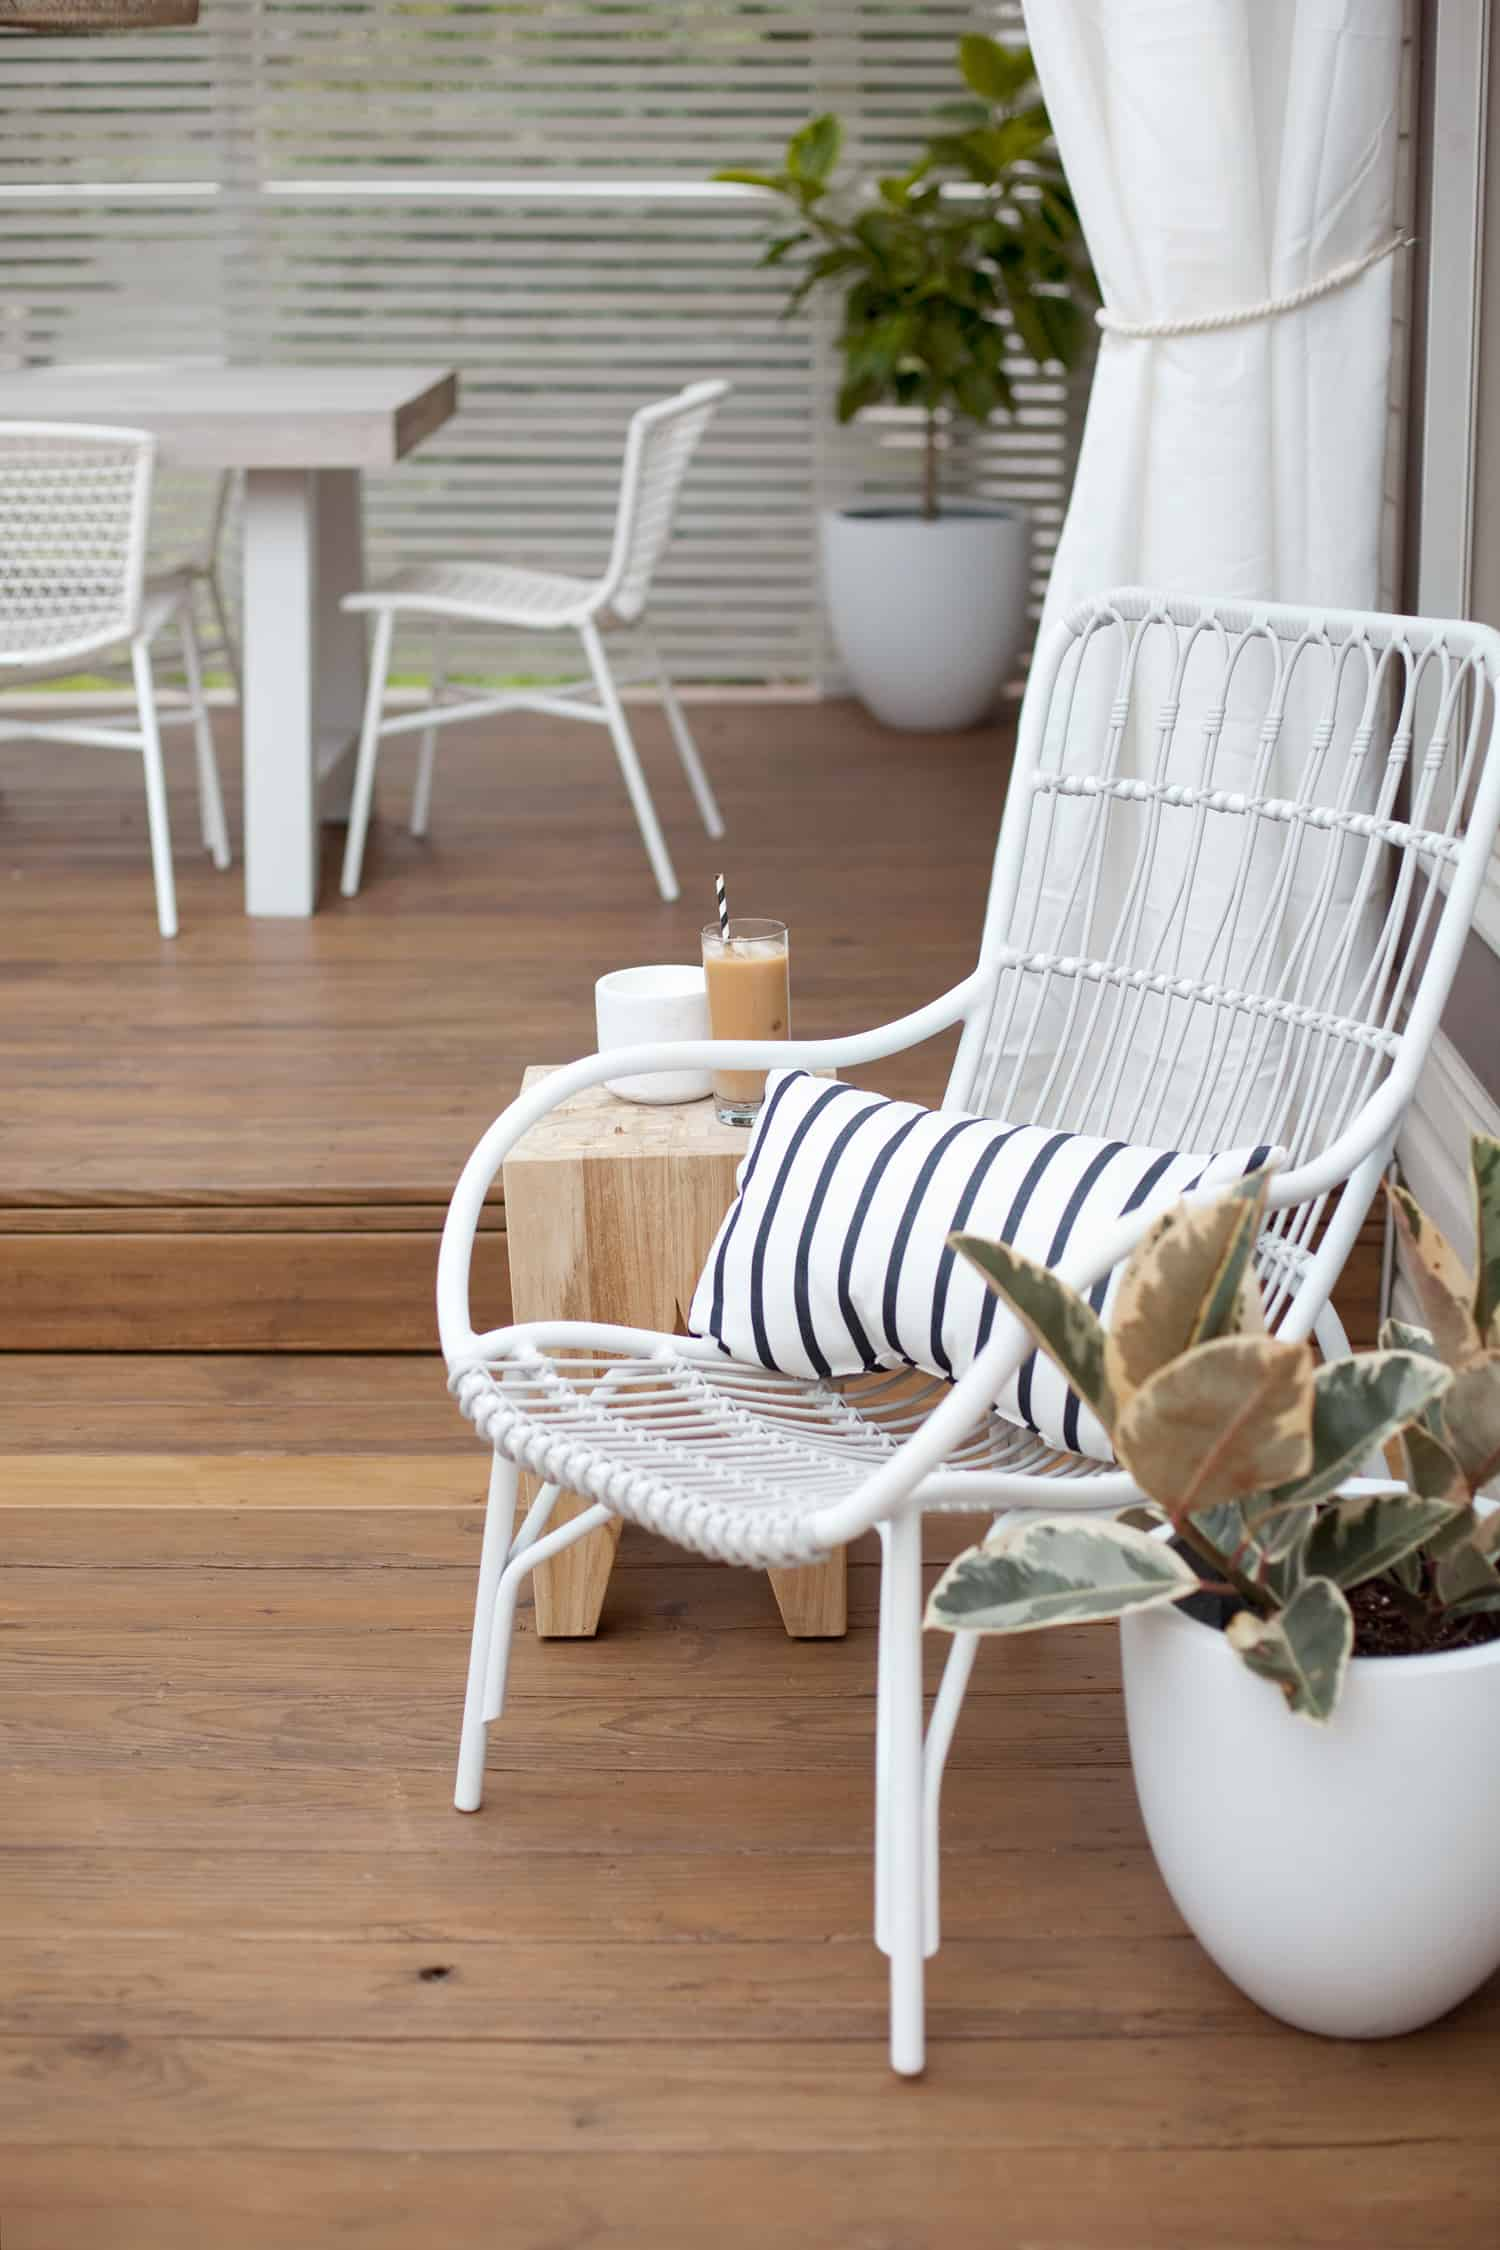 How to Refinish an Old Wood Deck